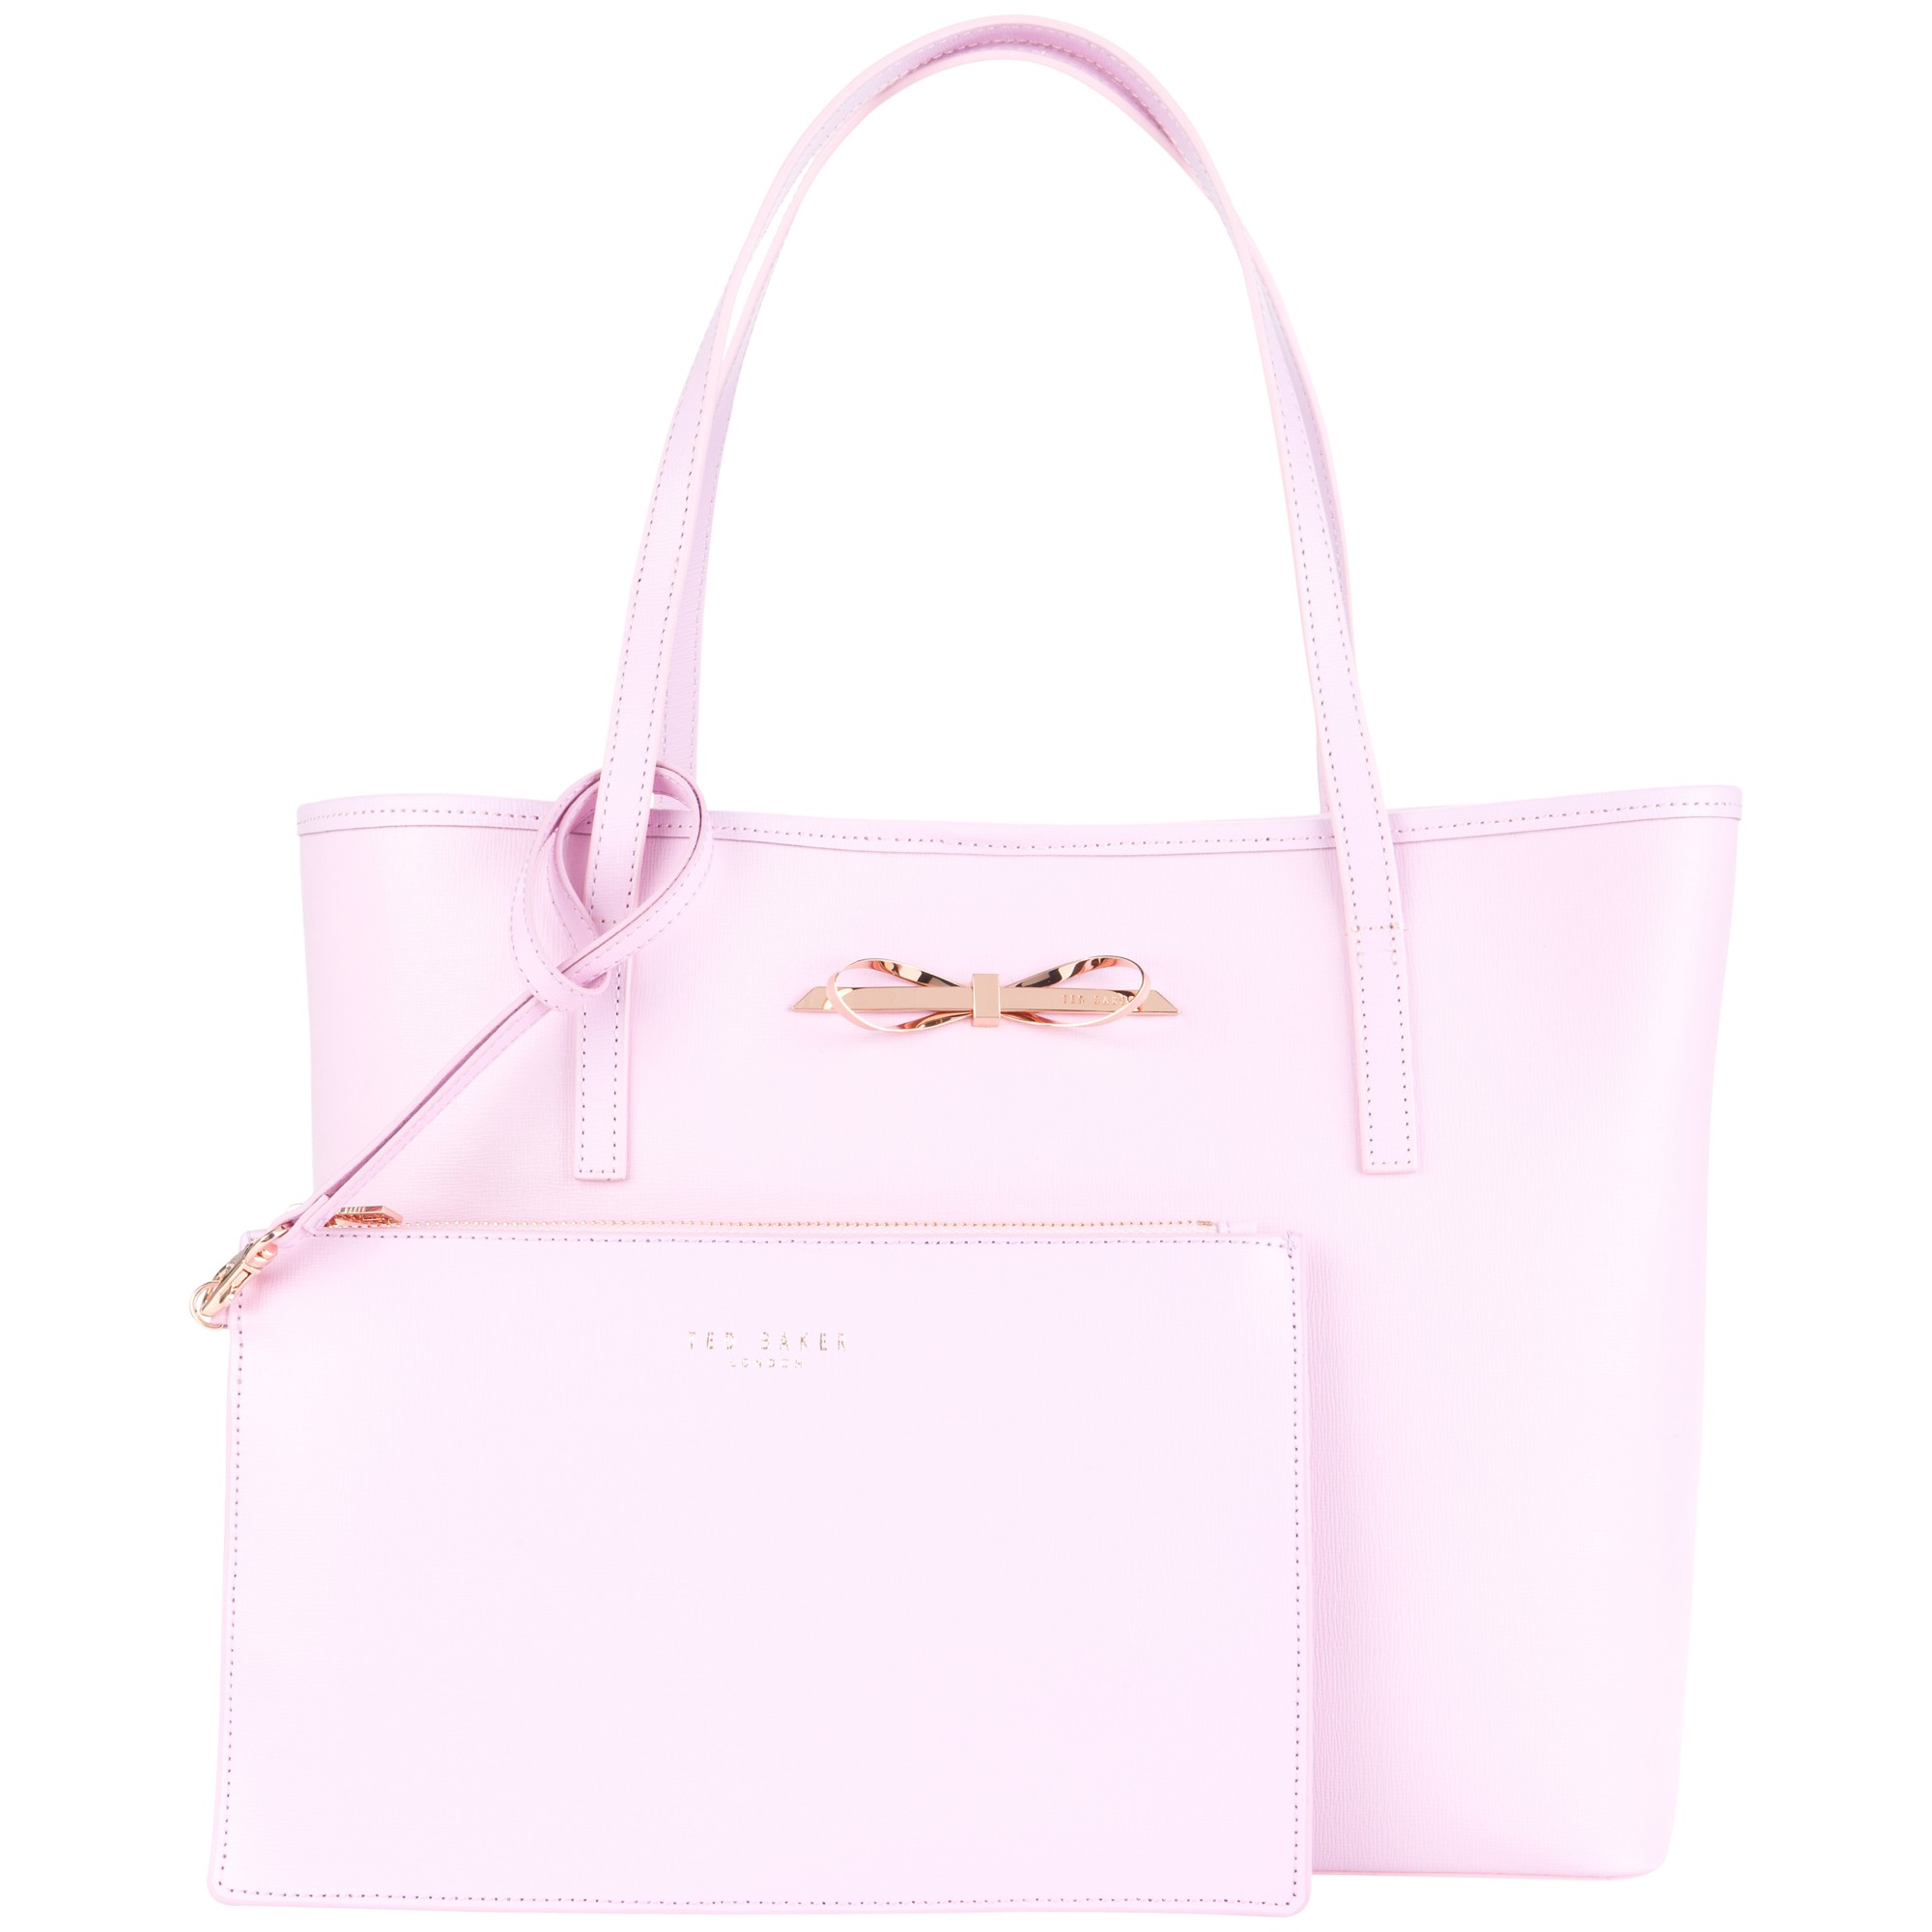 66ddace1ff63 Ted Baker Isabow Crosshatch Leather Bow Shopper Bag in Pink - Lyst